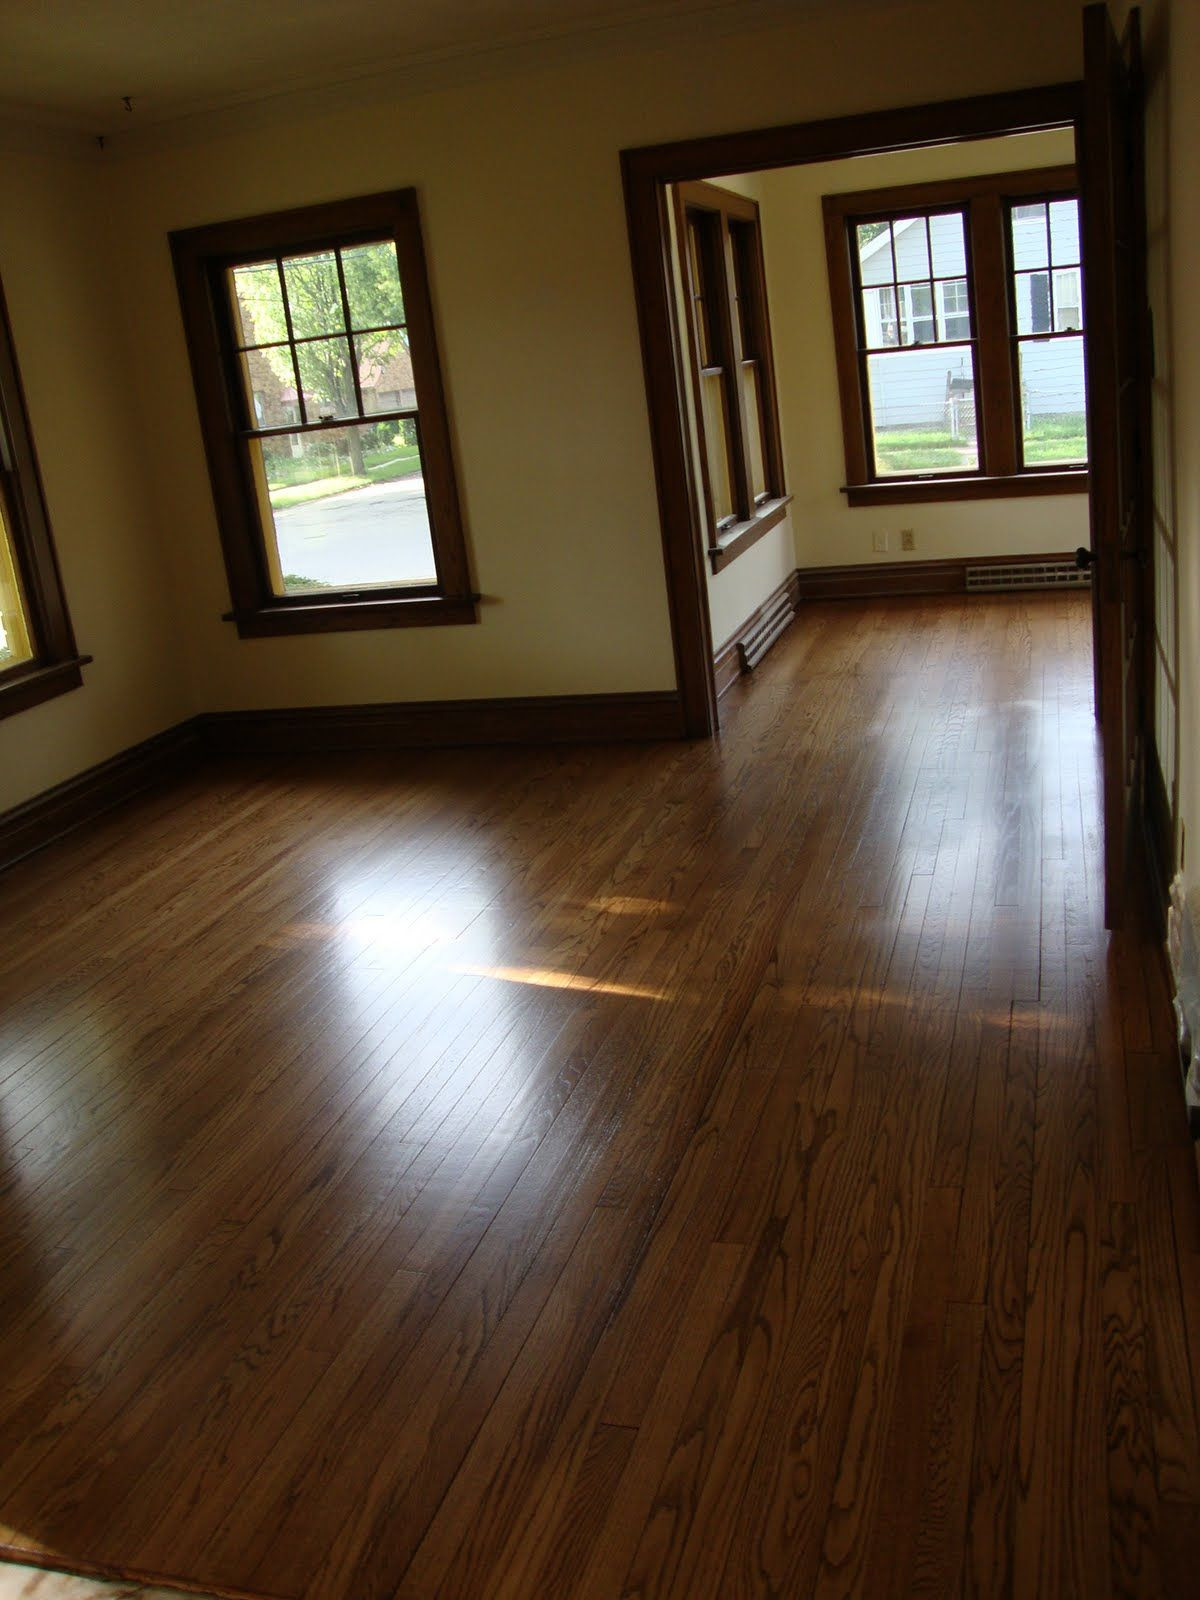 restaining hardwood floors darker of how to get paint off of hardwood floors adventures in staining my pertaining to how to get paint off of hardwood floors dark wood trim with hardwood floors and lighter